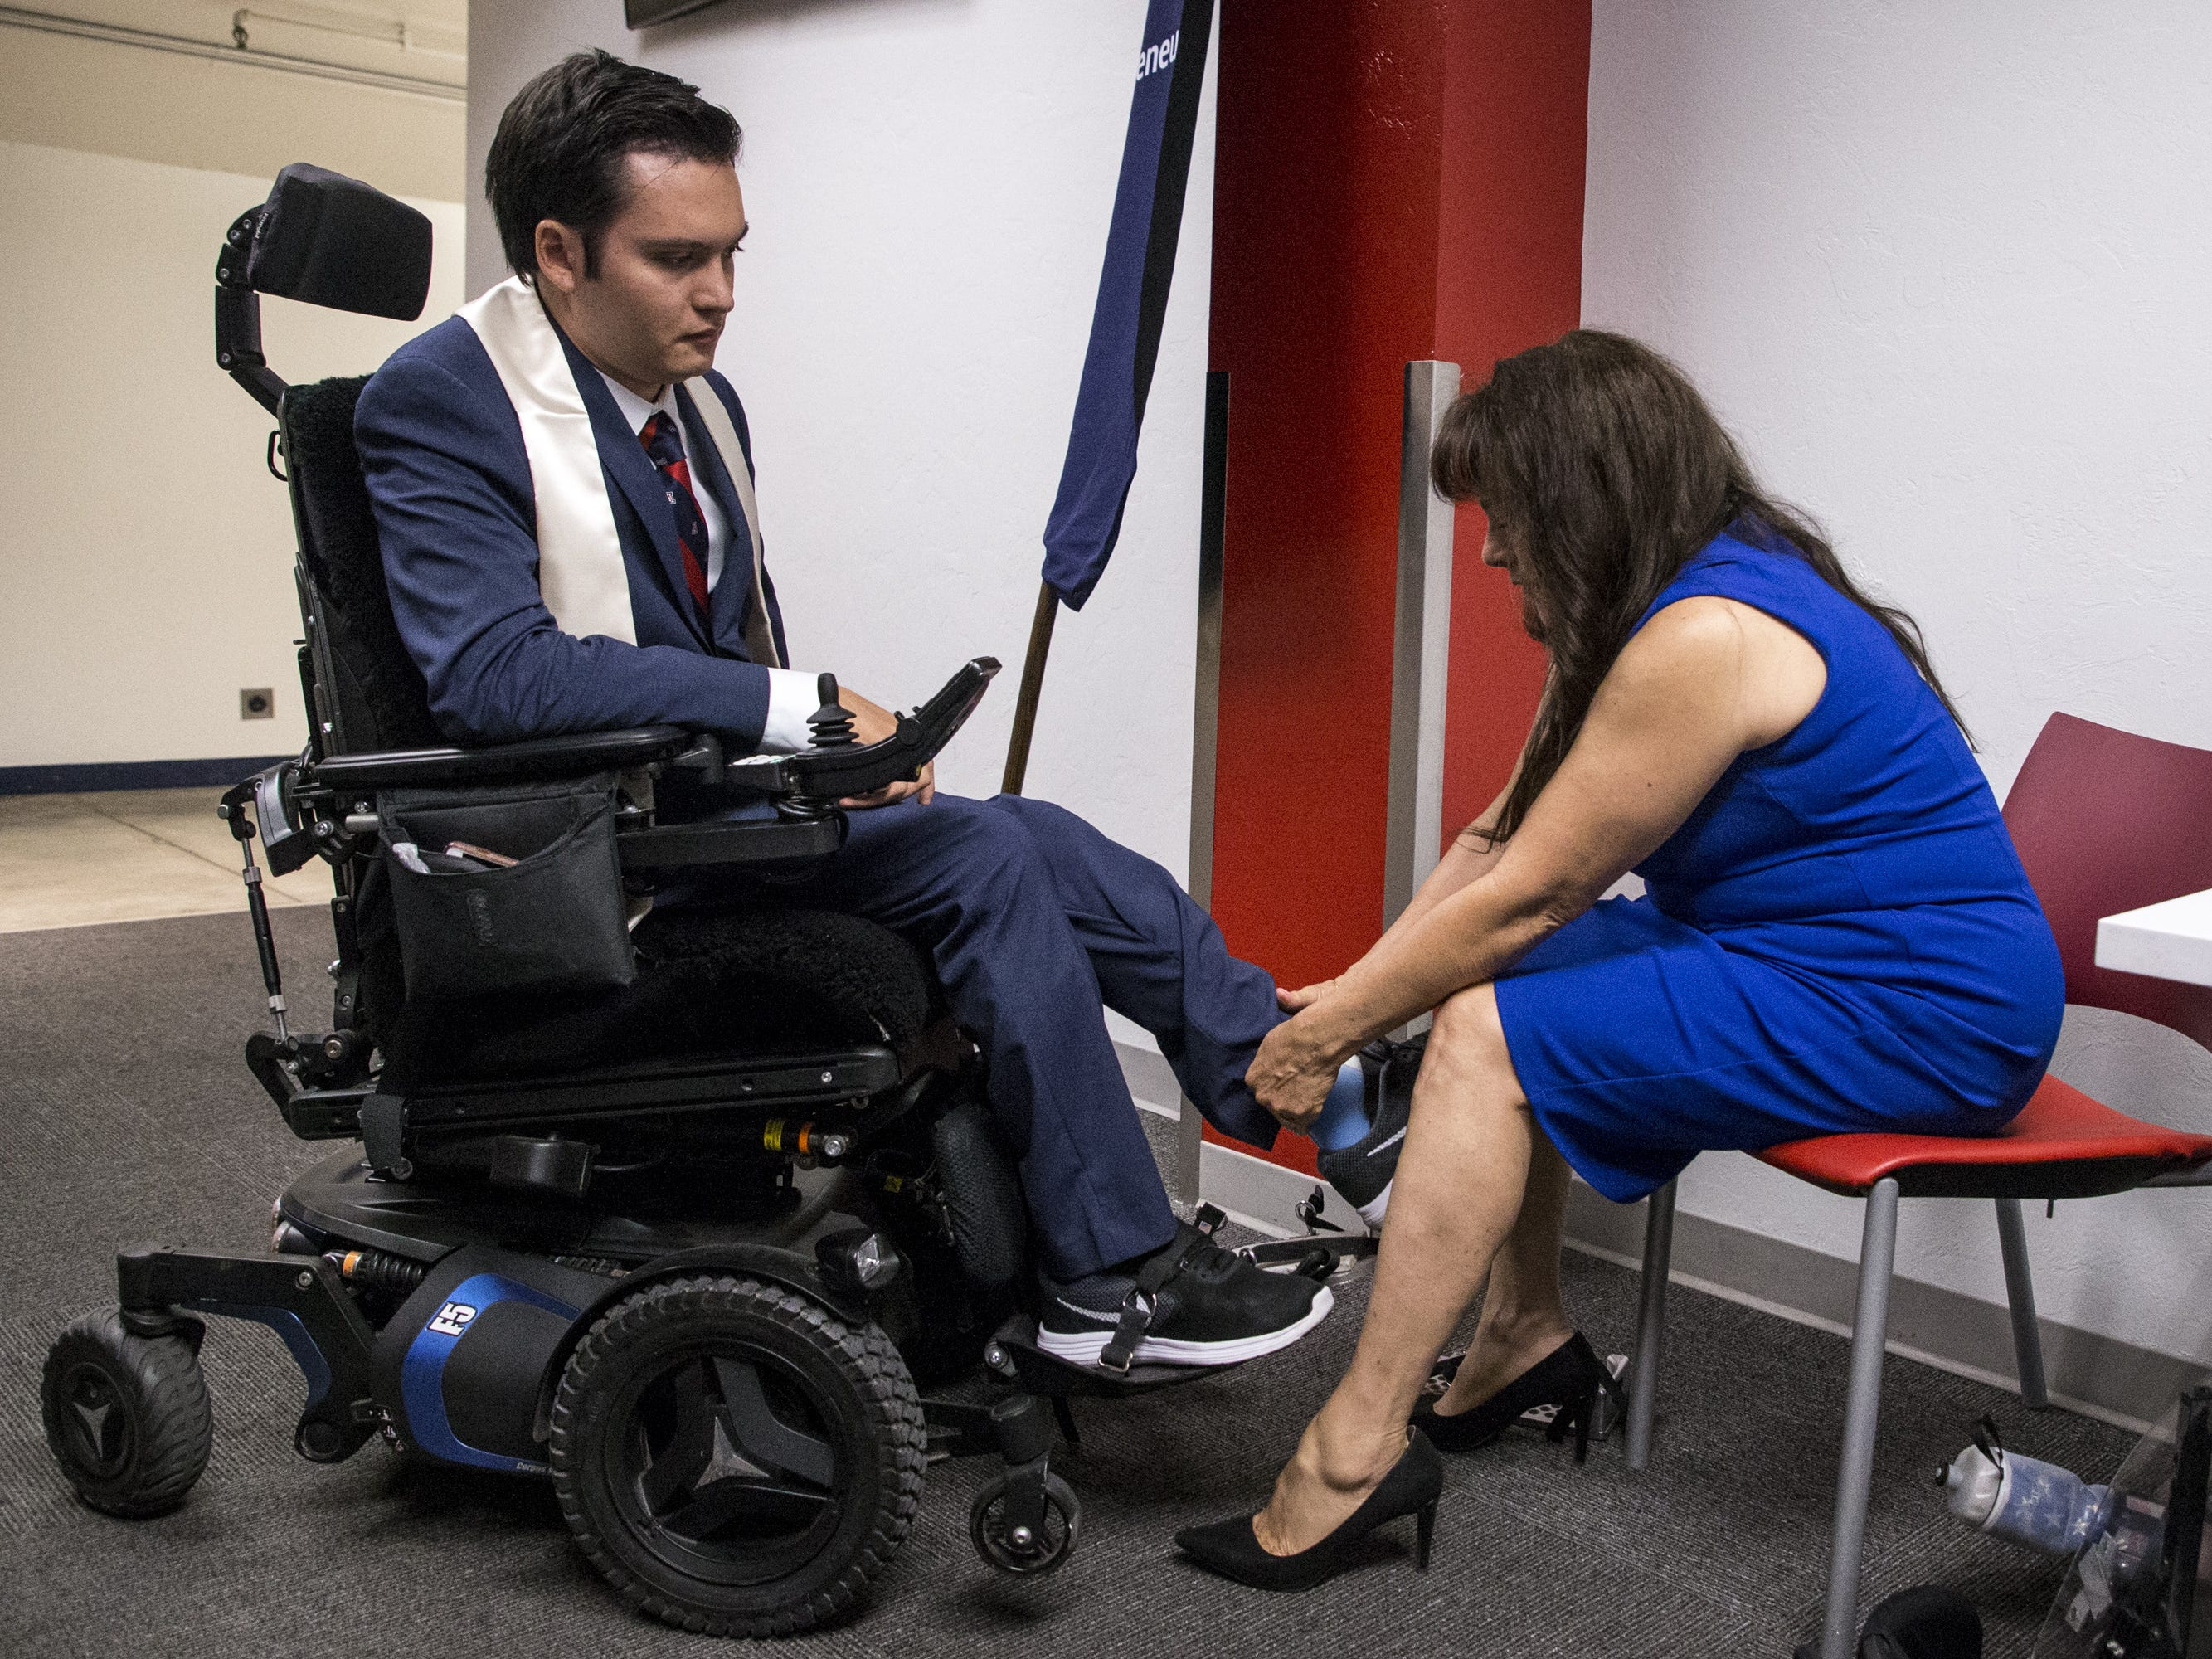 Hermelinda Bristol helps her son, Jeffrey, 24, stand up as he is recognized during University of Arizona's Eller College of Management convocation on Saturday, May 11, 2019, at McKale Memorial Center in Tucson, Ariz. Bristol, who was diagnosed with cavernous angioma as a child, has begun to learn how to walk with the help of an exoskeleton created as part of an engineering school design program.